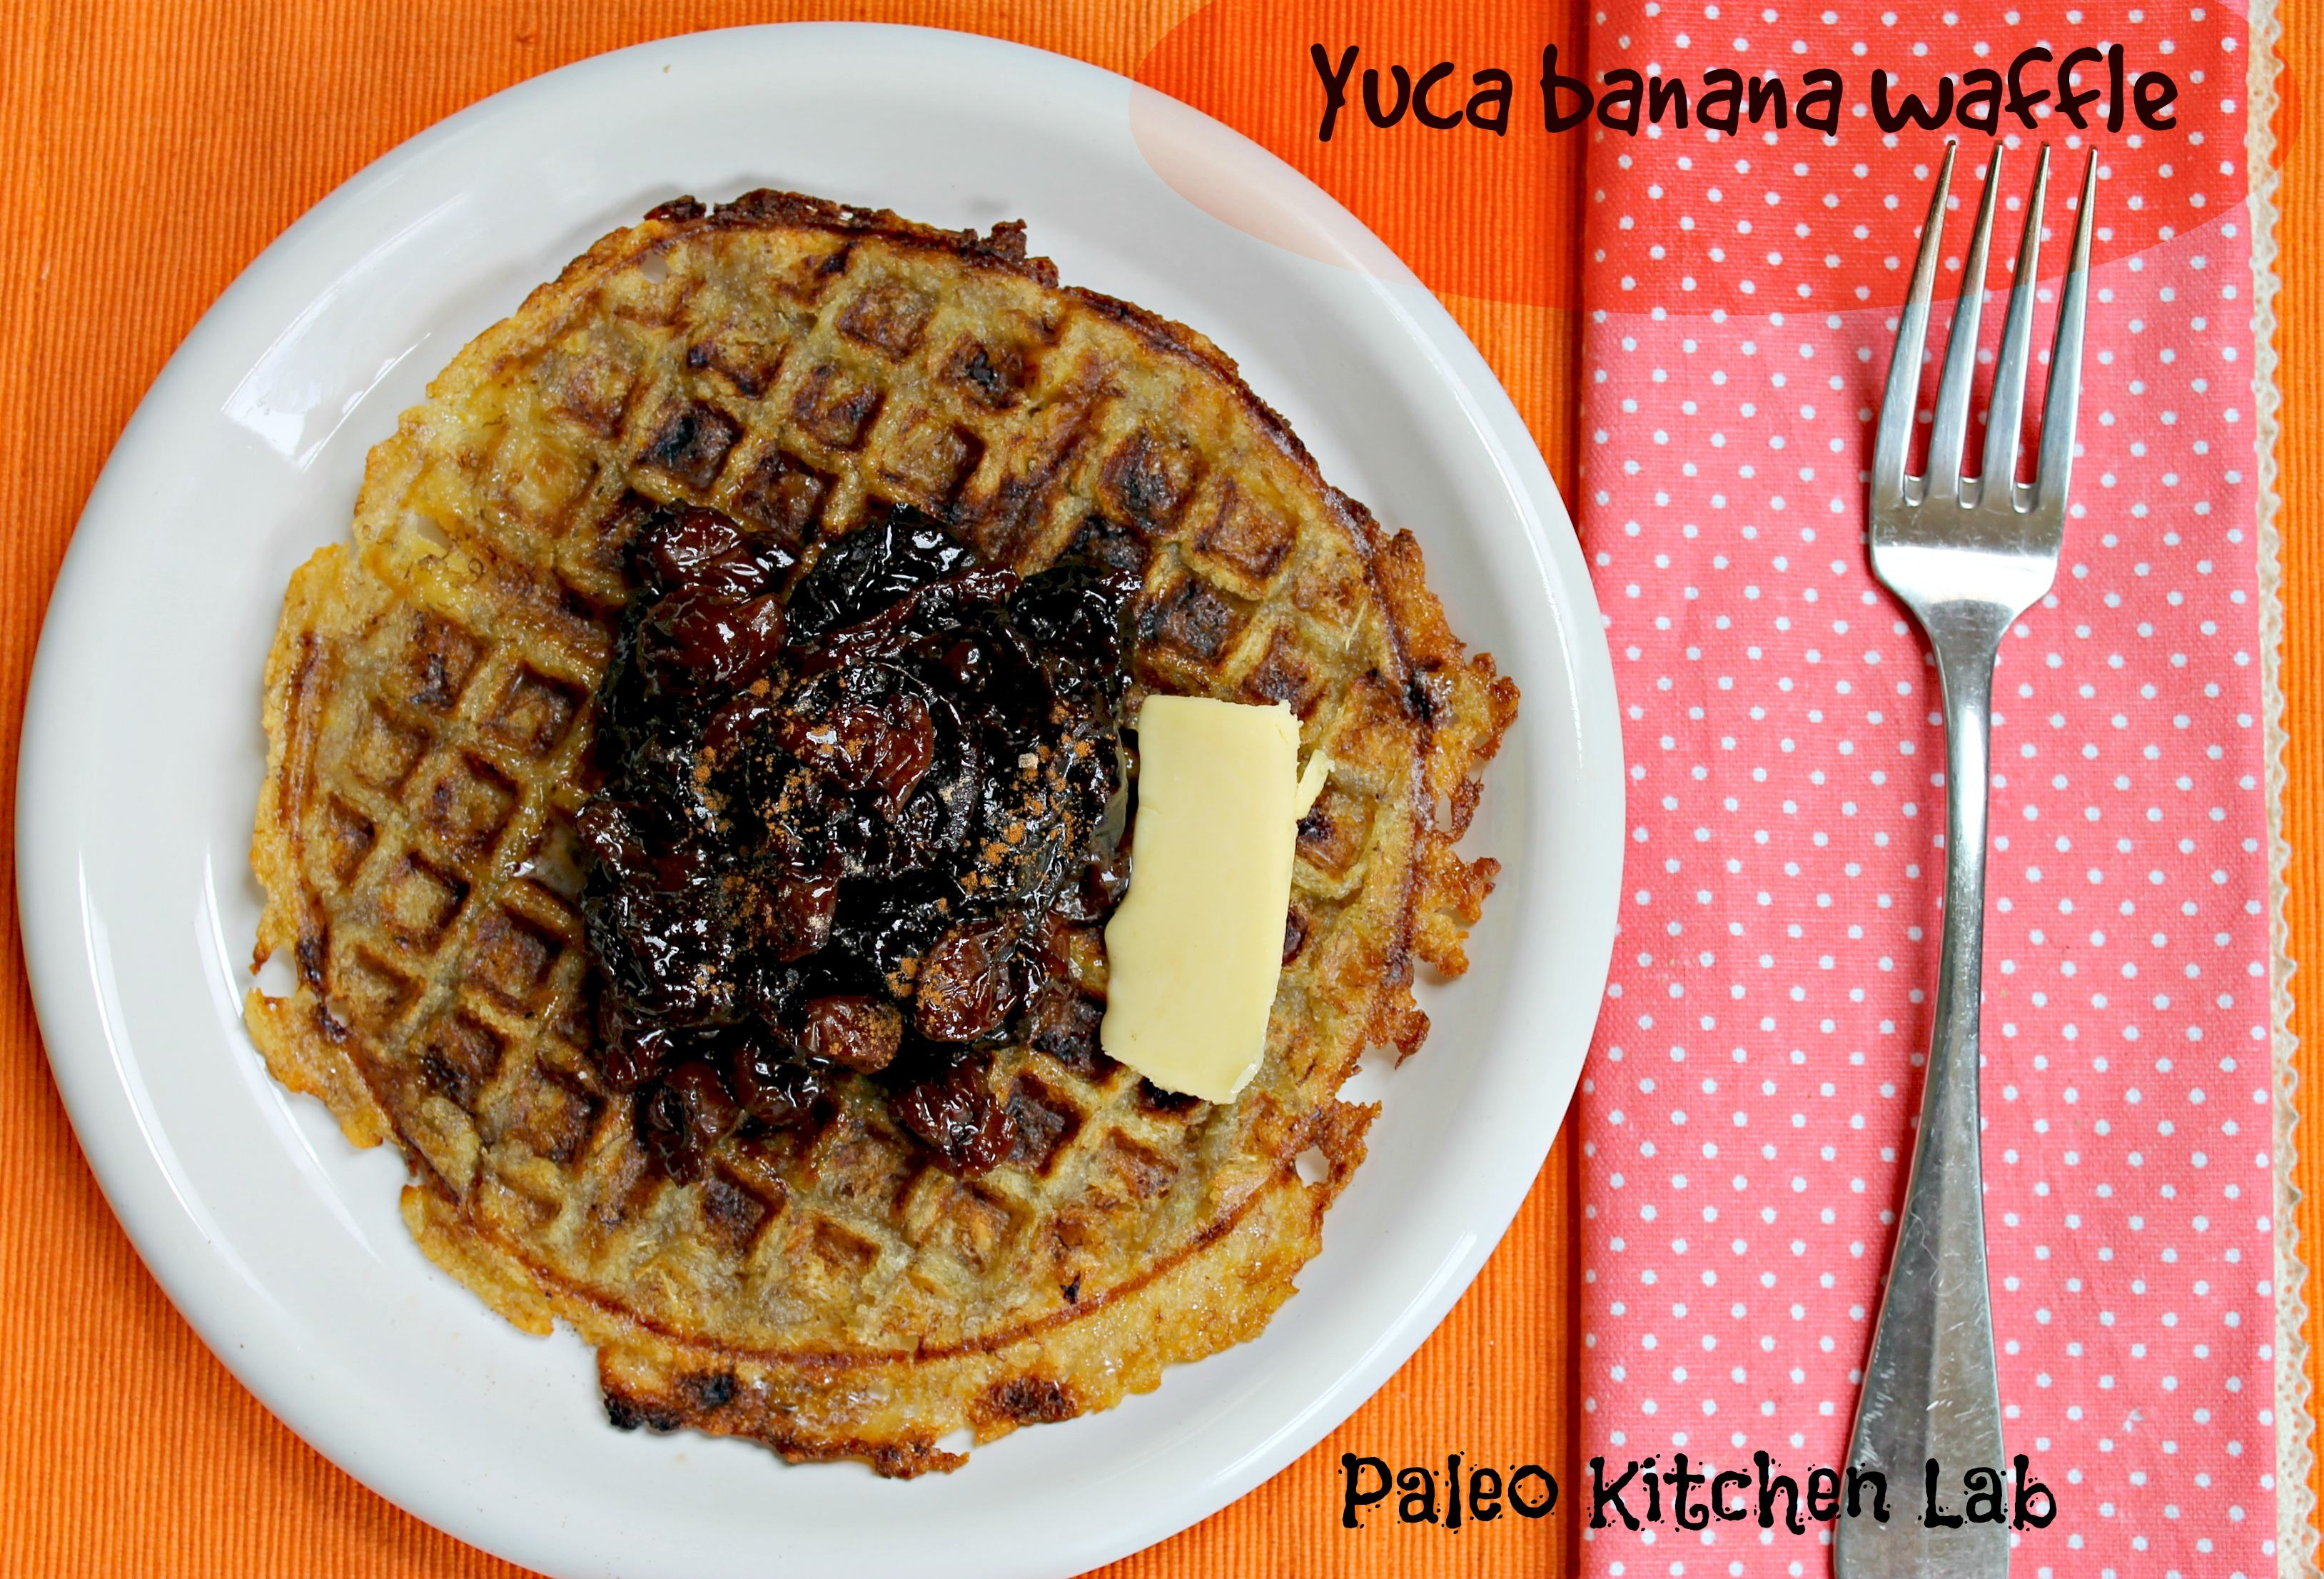 Yuca and banana waffles with tapioca substitution